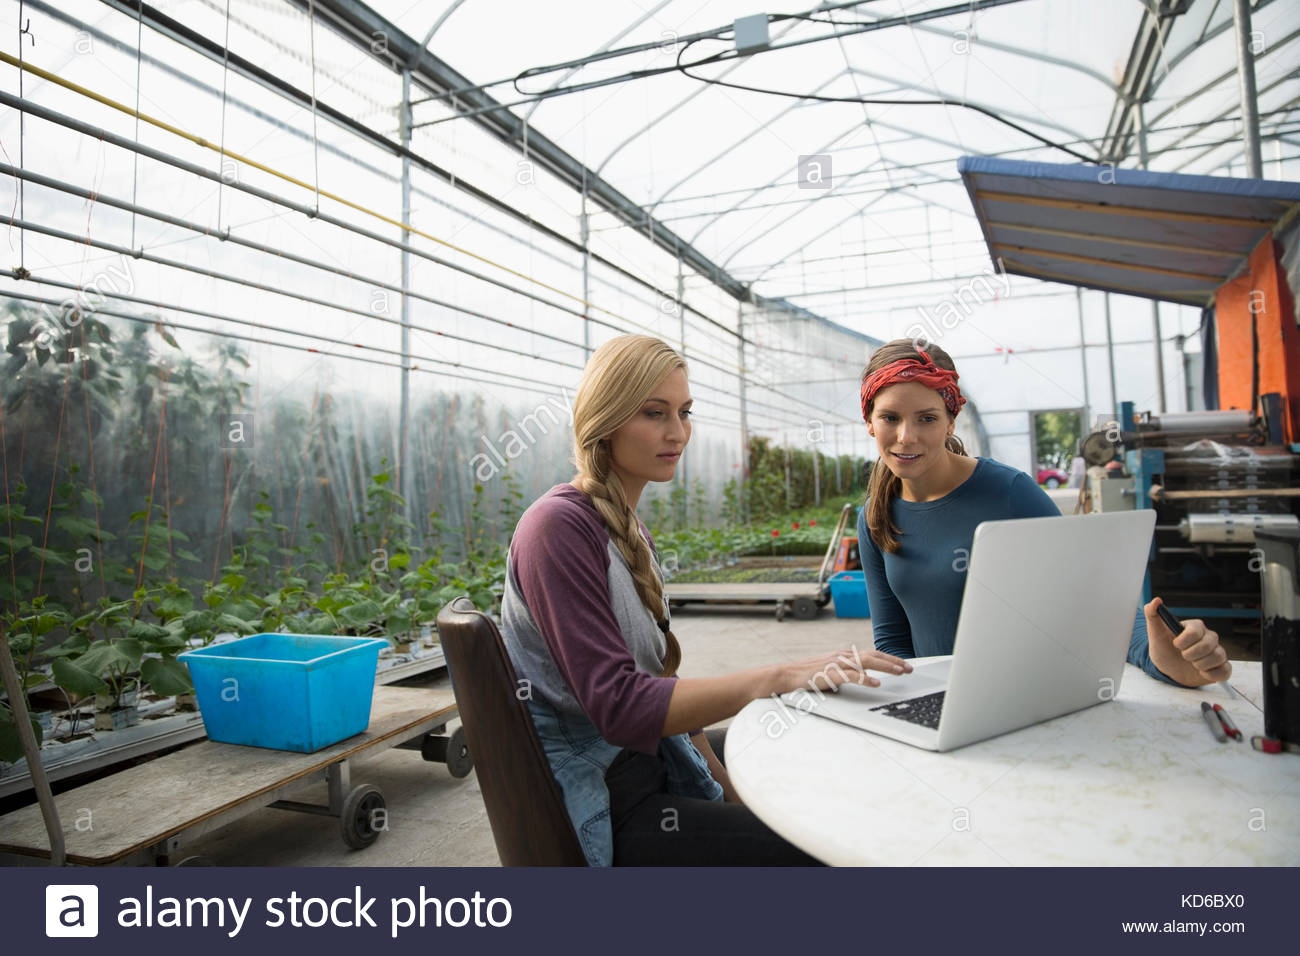 Female farmers using laptop in greenhouse - Stock Image